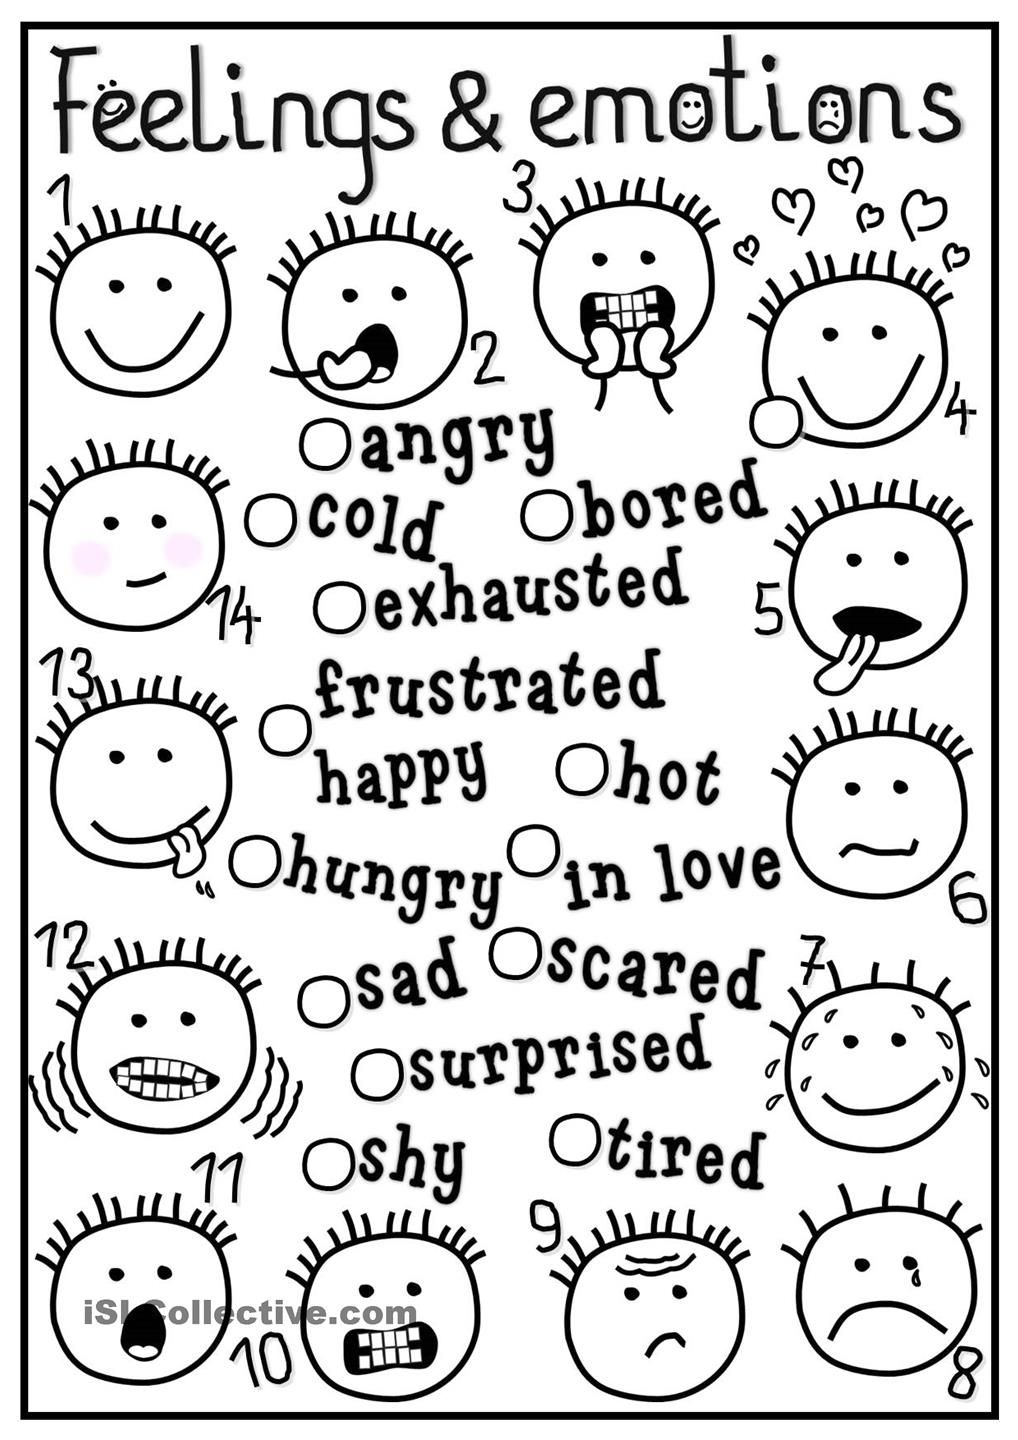 worksheet Emotions Worksheet 1000 images about feeling on pinterest social emotional learning feelings words and activities